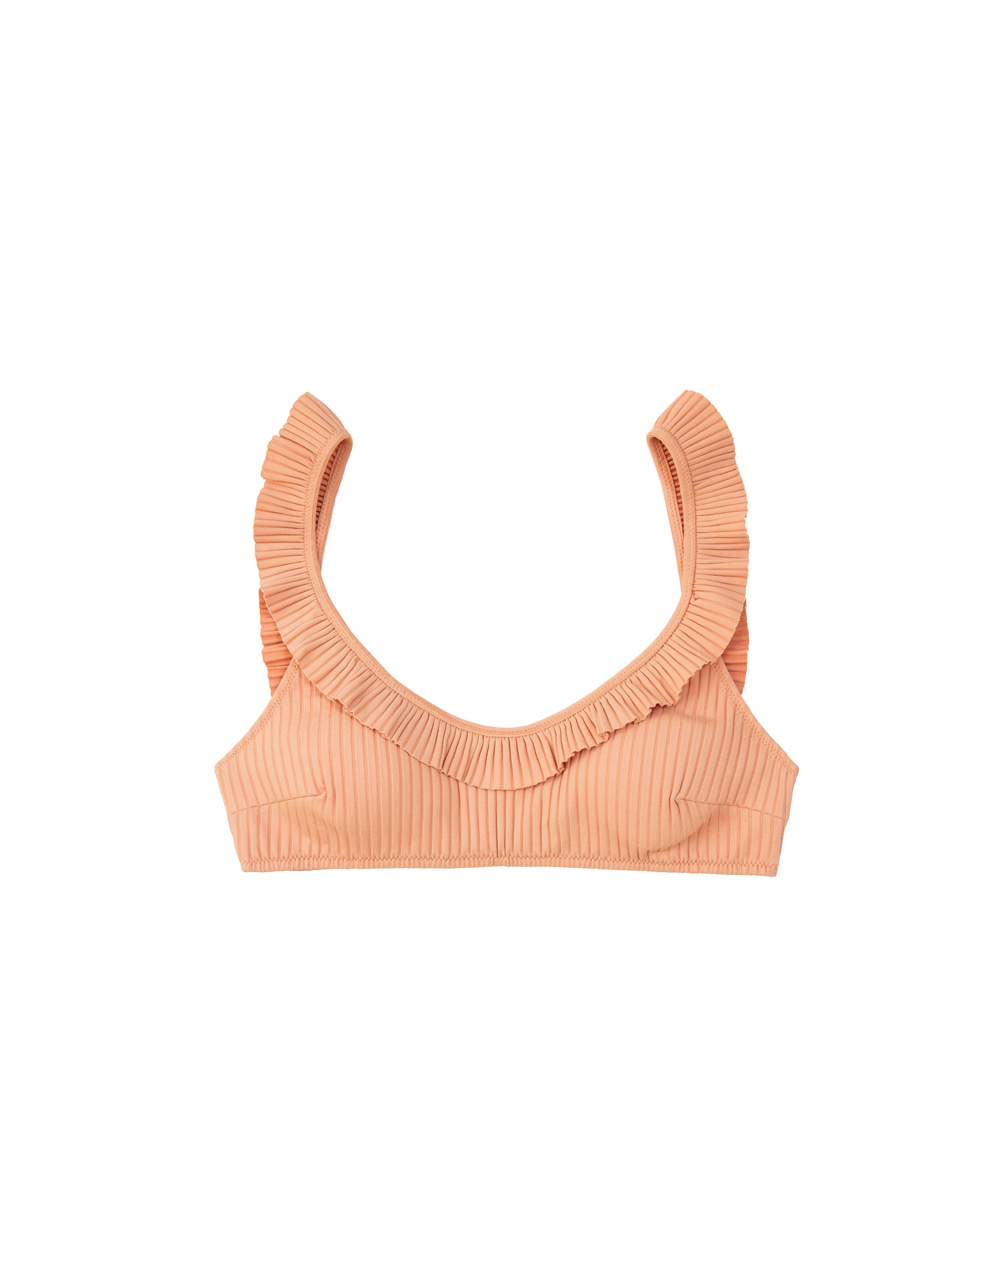 swimsuit bikini top South Apricot 42 € Girls In Paris photo 6